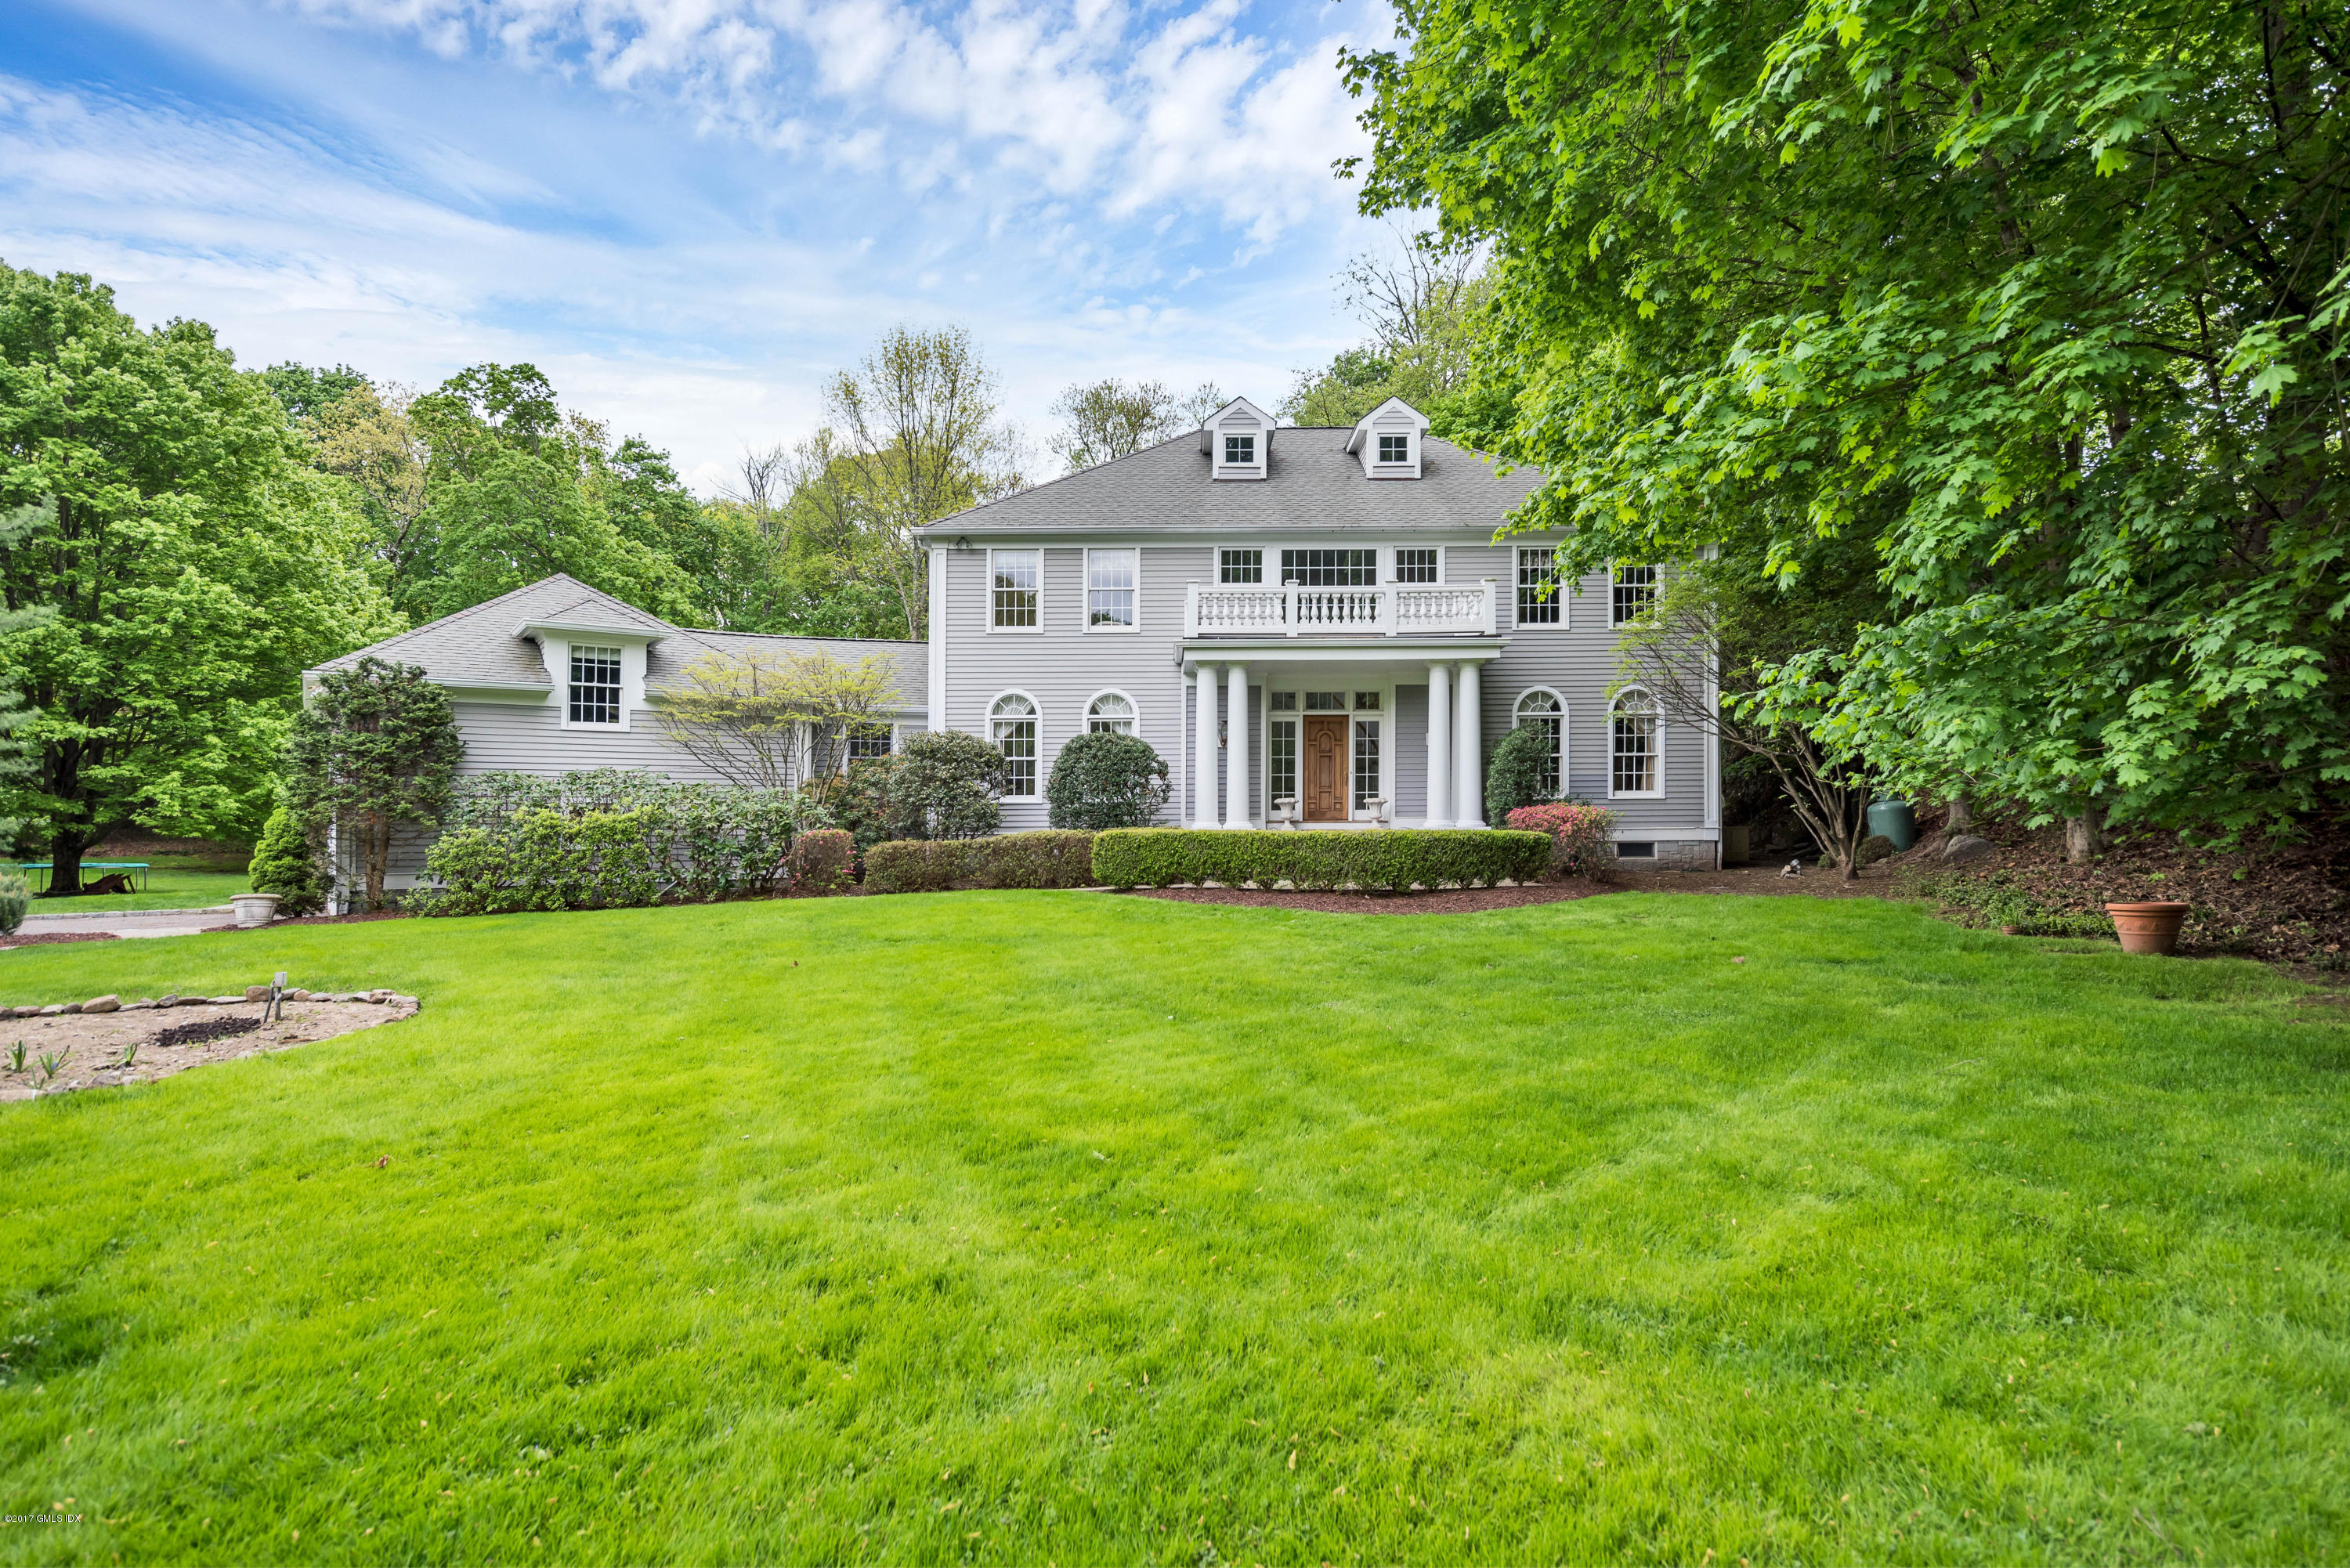 329 Stanwich Road,Greenwich,Connecticut 06830,4 Bedrooms Bedrooms,3 BathroomsBathrooms,Single family,Stanwich,104704